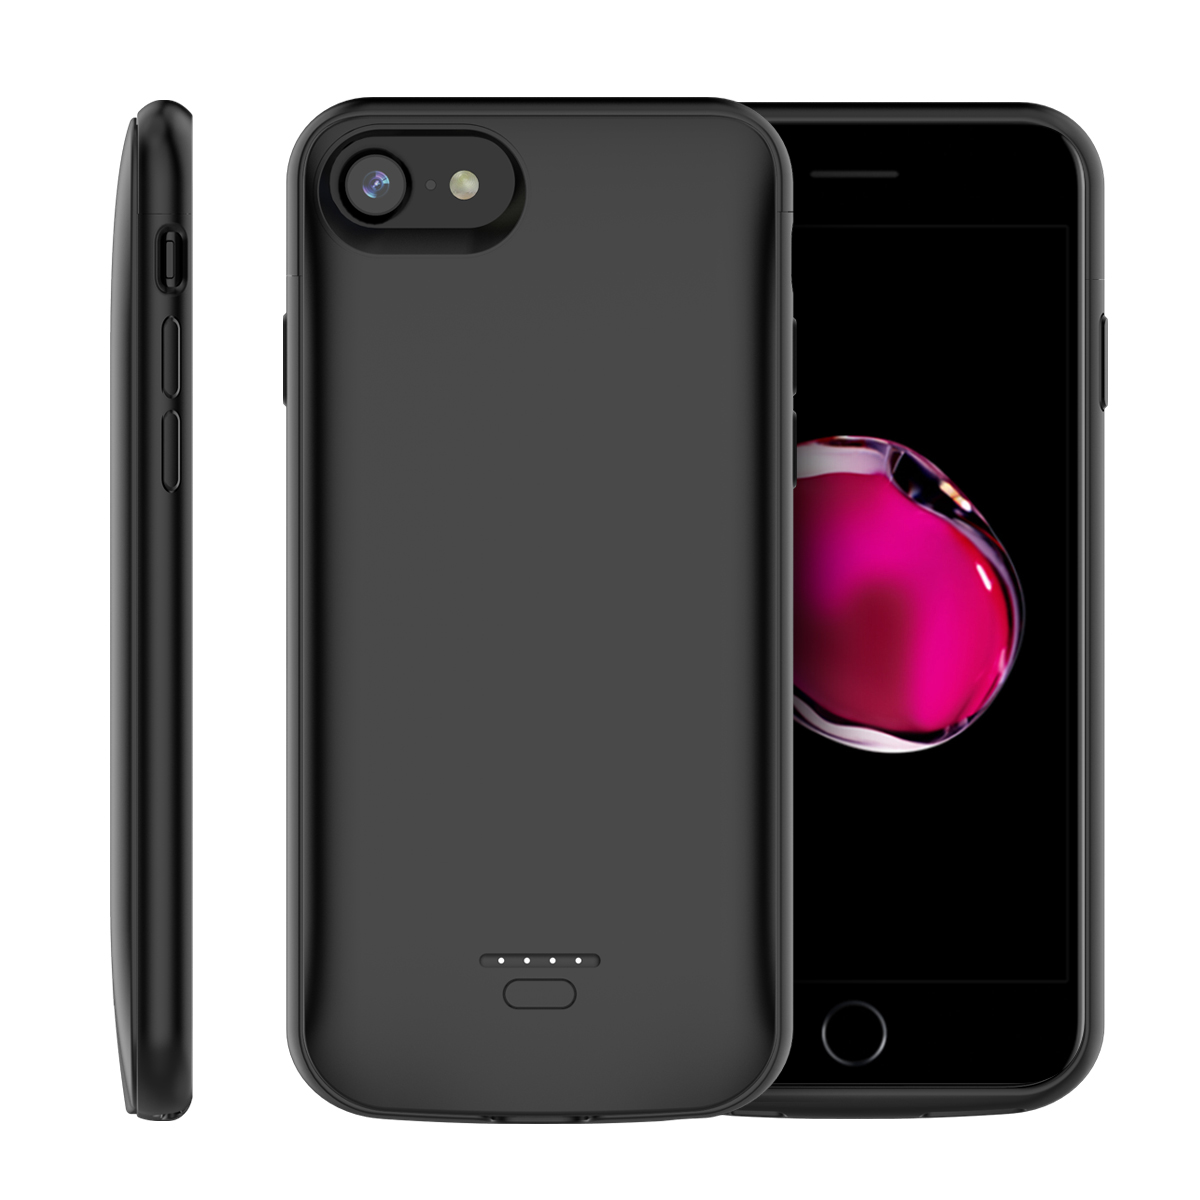 CASEWIN 4000mAh <font><b>Battery</b></font> <font><b>Case</b></font> For <font><b>iPhone</b></font> 7 8 6 6S 5 <font><b>5S</b></font> SE Charger <font><b>Case</b></font> External Backup PowerBank Charging <font><b>Case</b></font> For <font><b>iPhone</b></font> 7 <font><b>Case</b></font> image